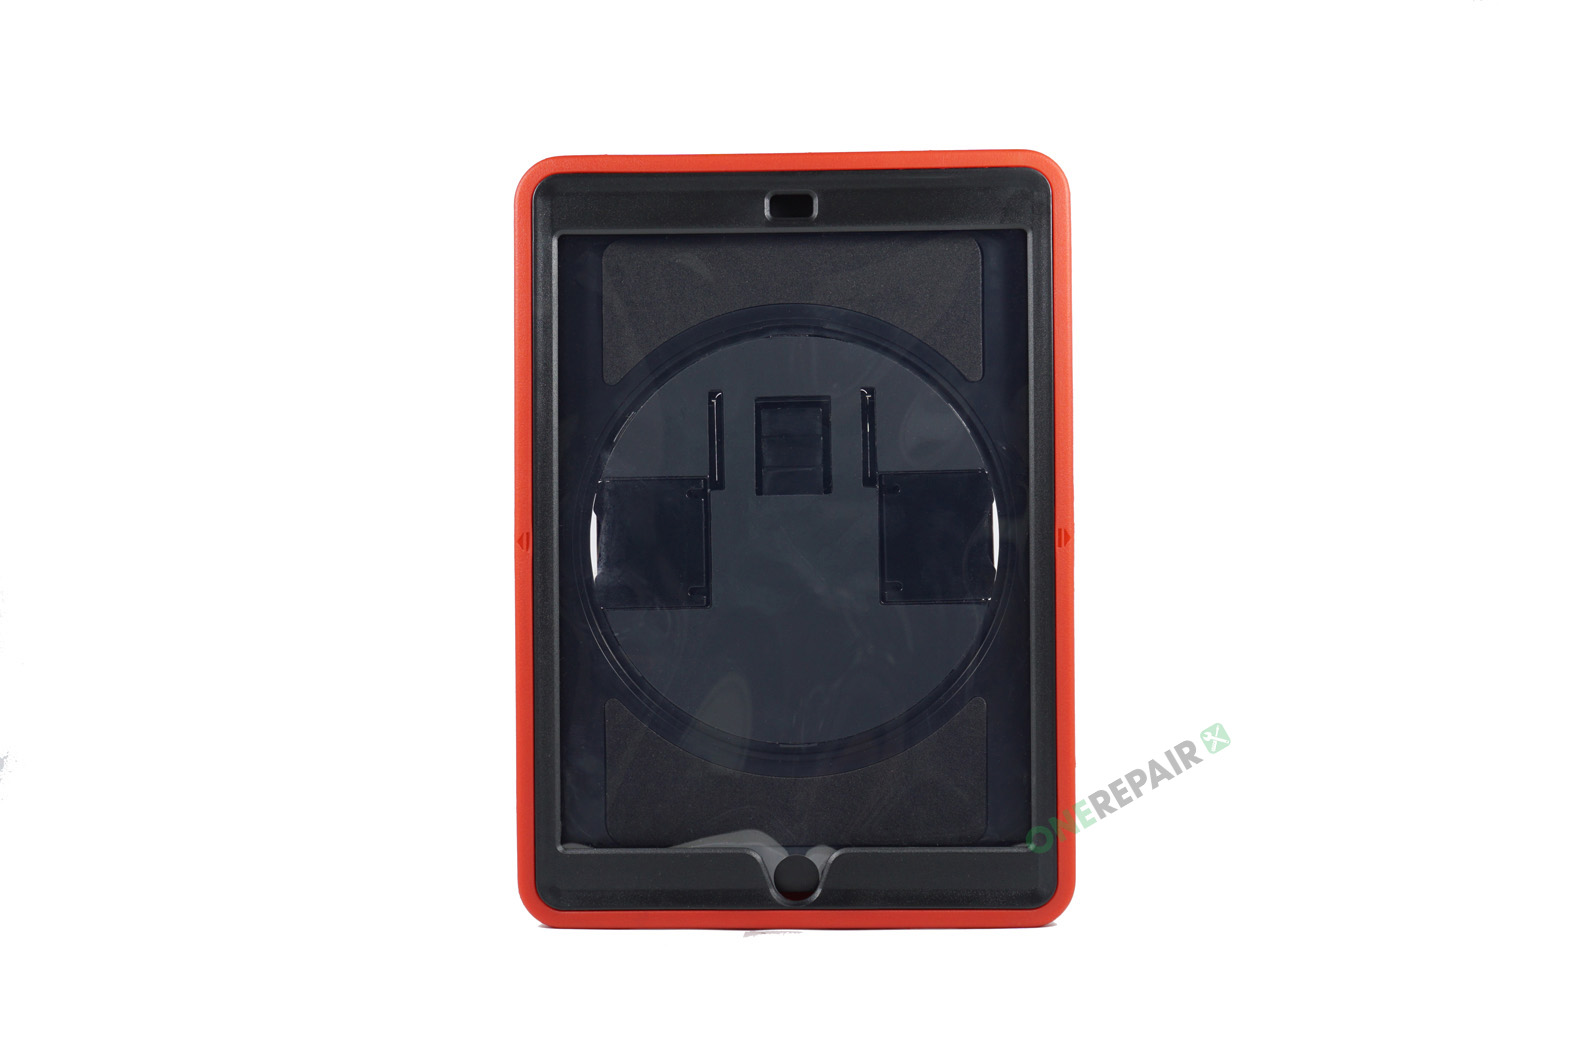 351068_351841_iPad_Air2_2_A1566_A1567_3-in-1_Thin_Boernecover_Børne_Hardcase_Cover_Roed_OneRepair_00002